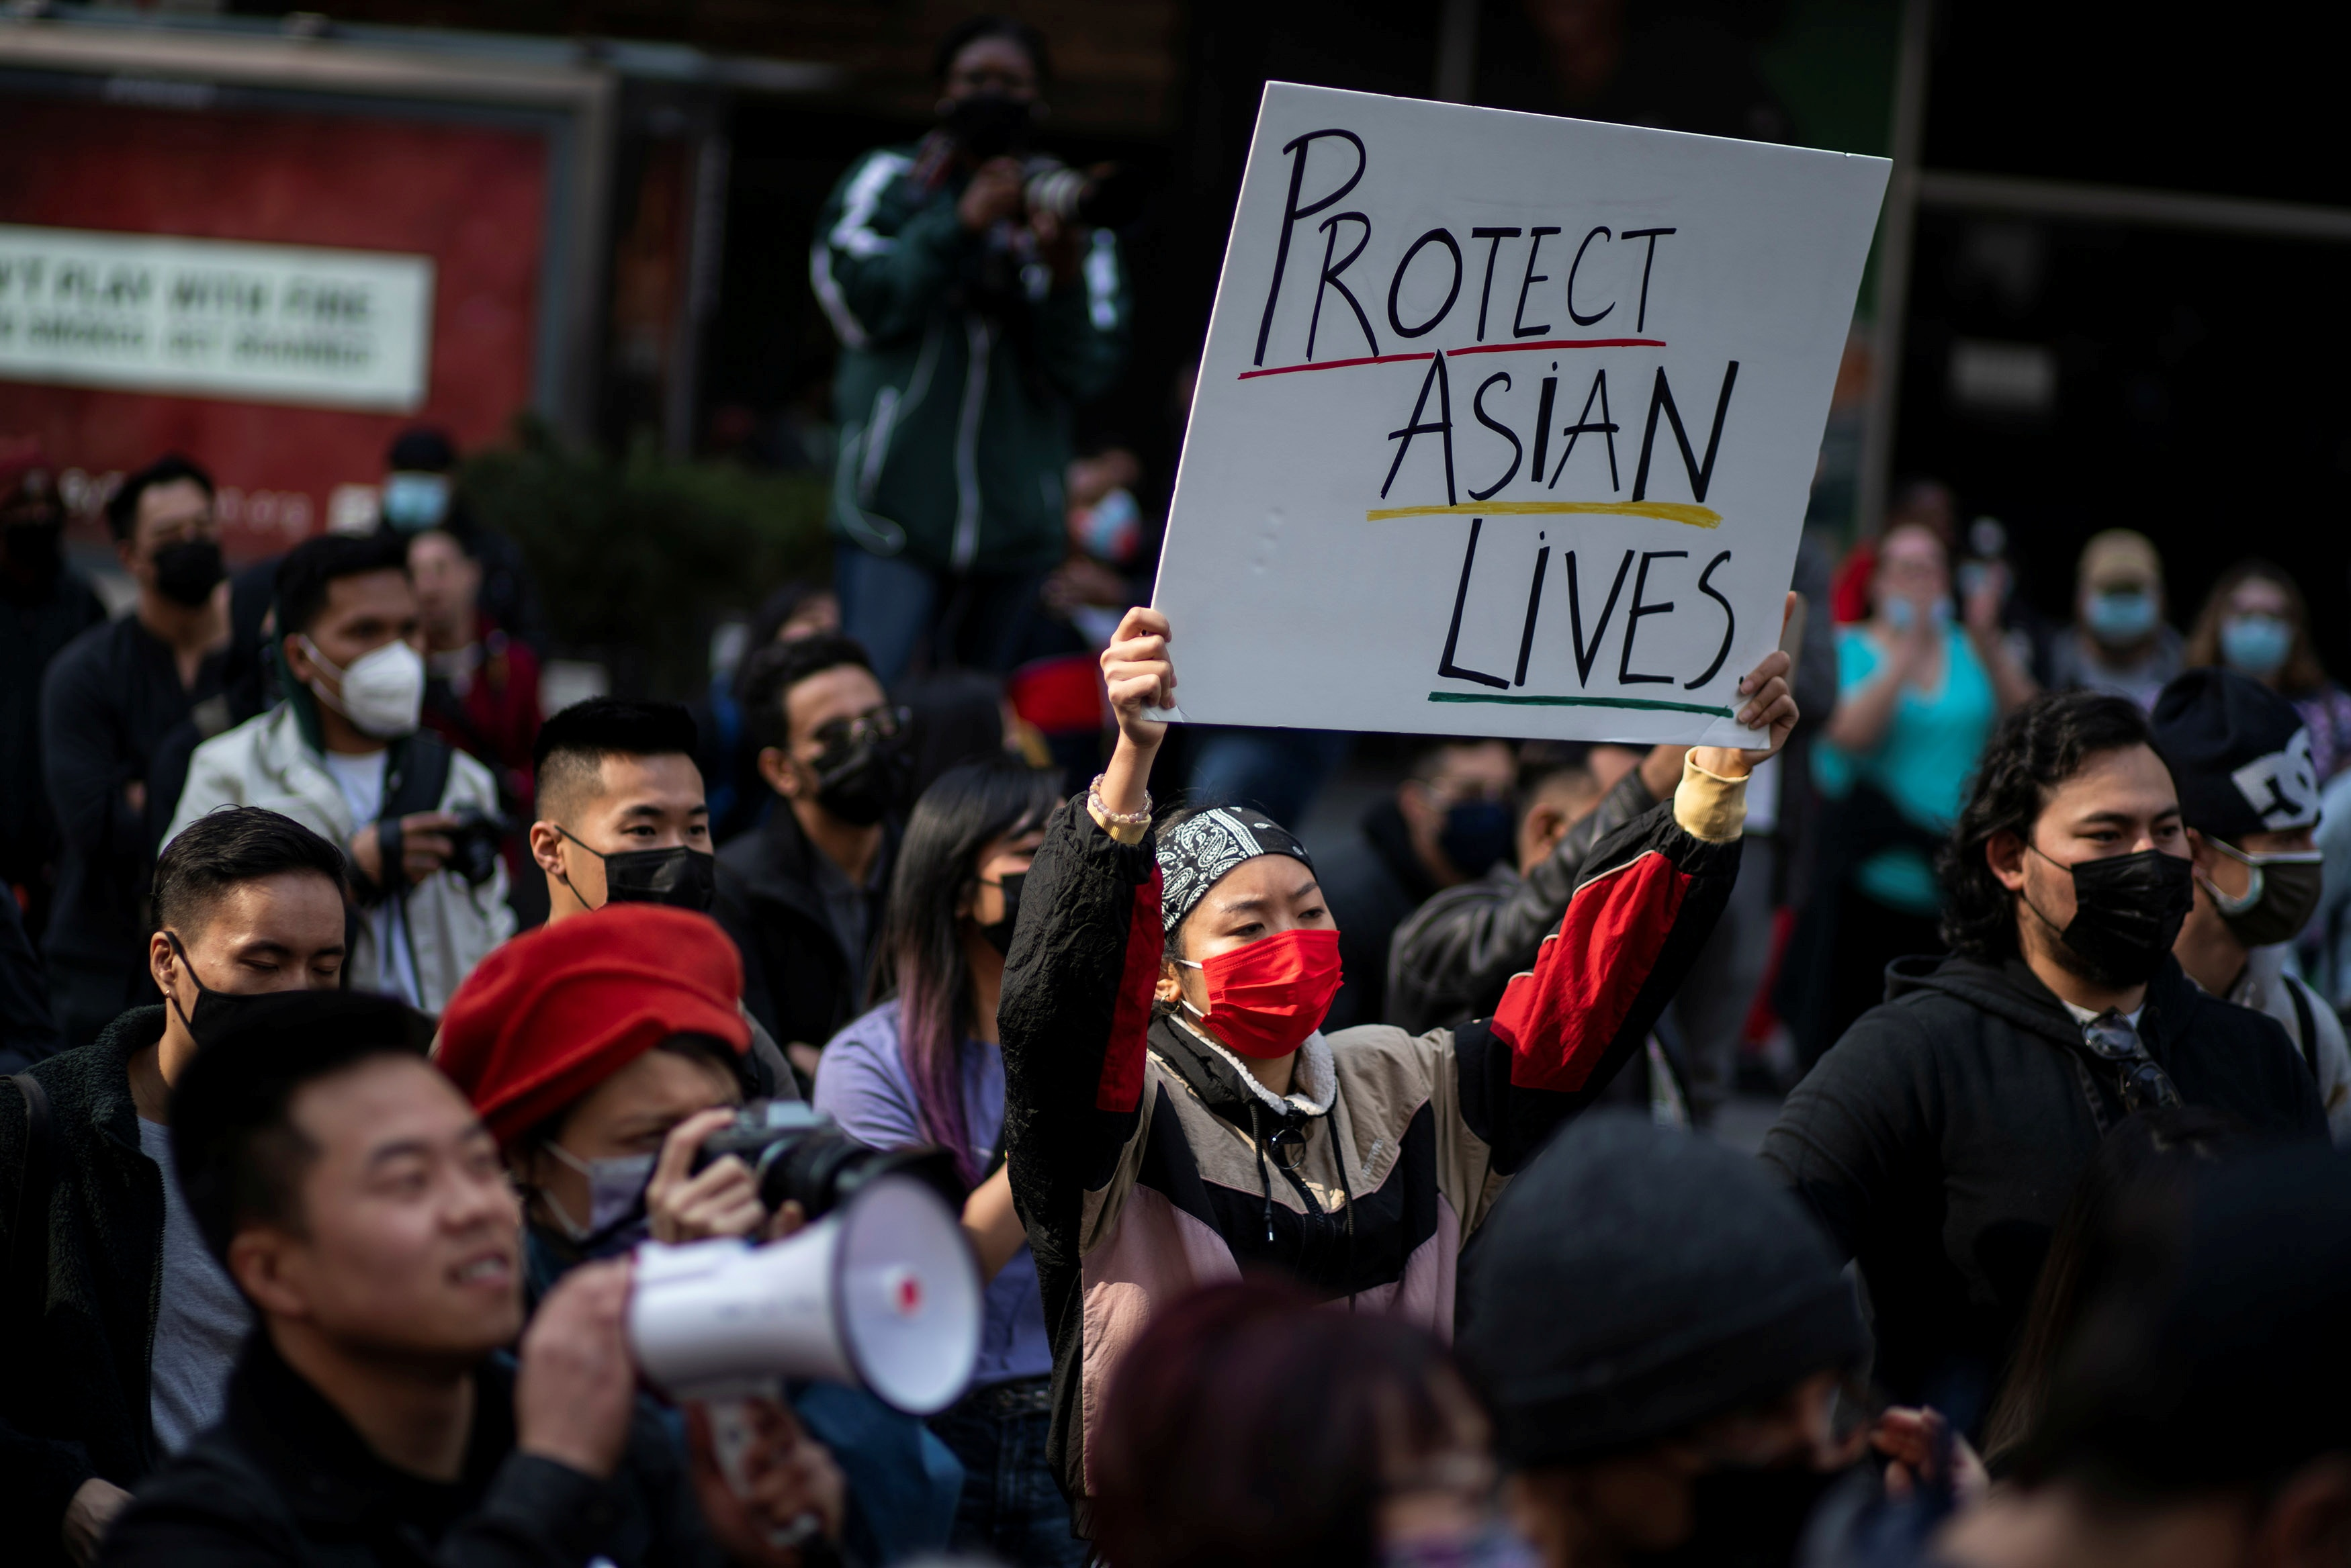 www.voanews.com: Attacks on Asian Americans Spiked by 150% in First Quarter of 2021